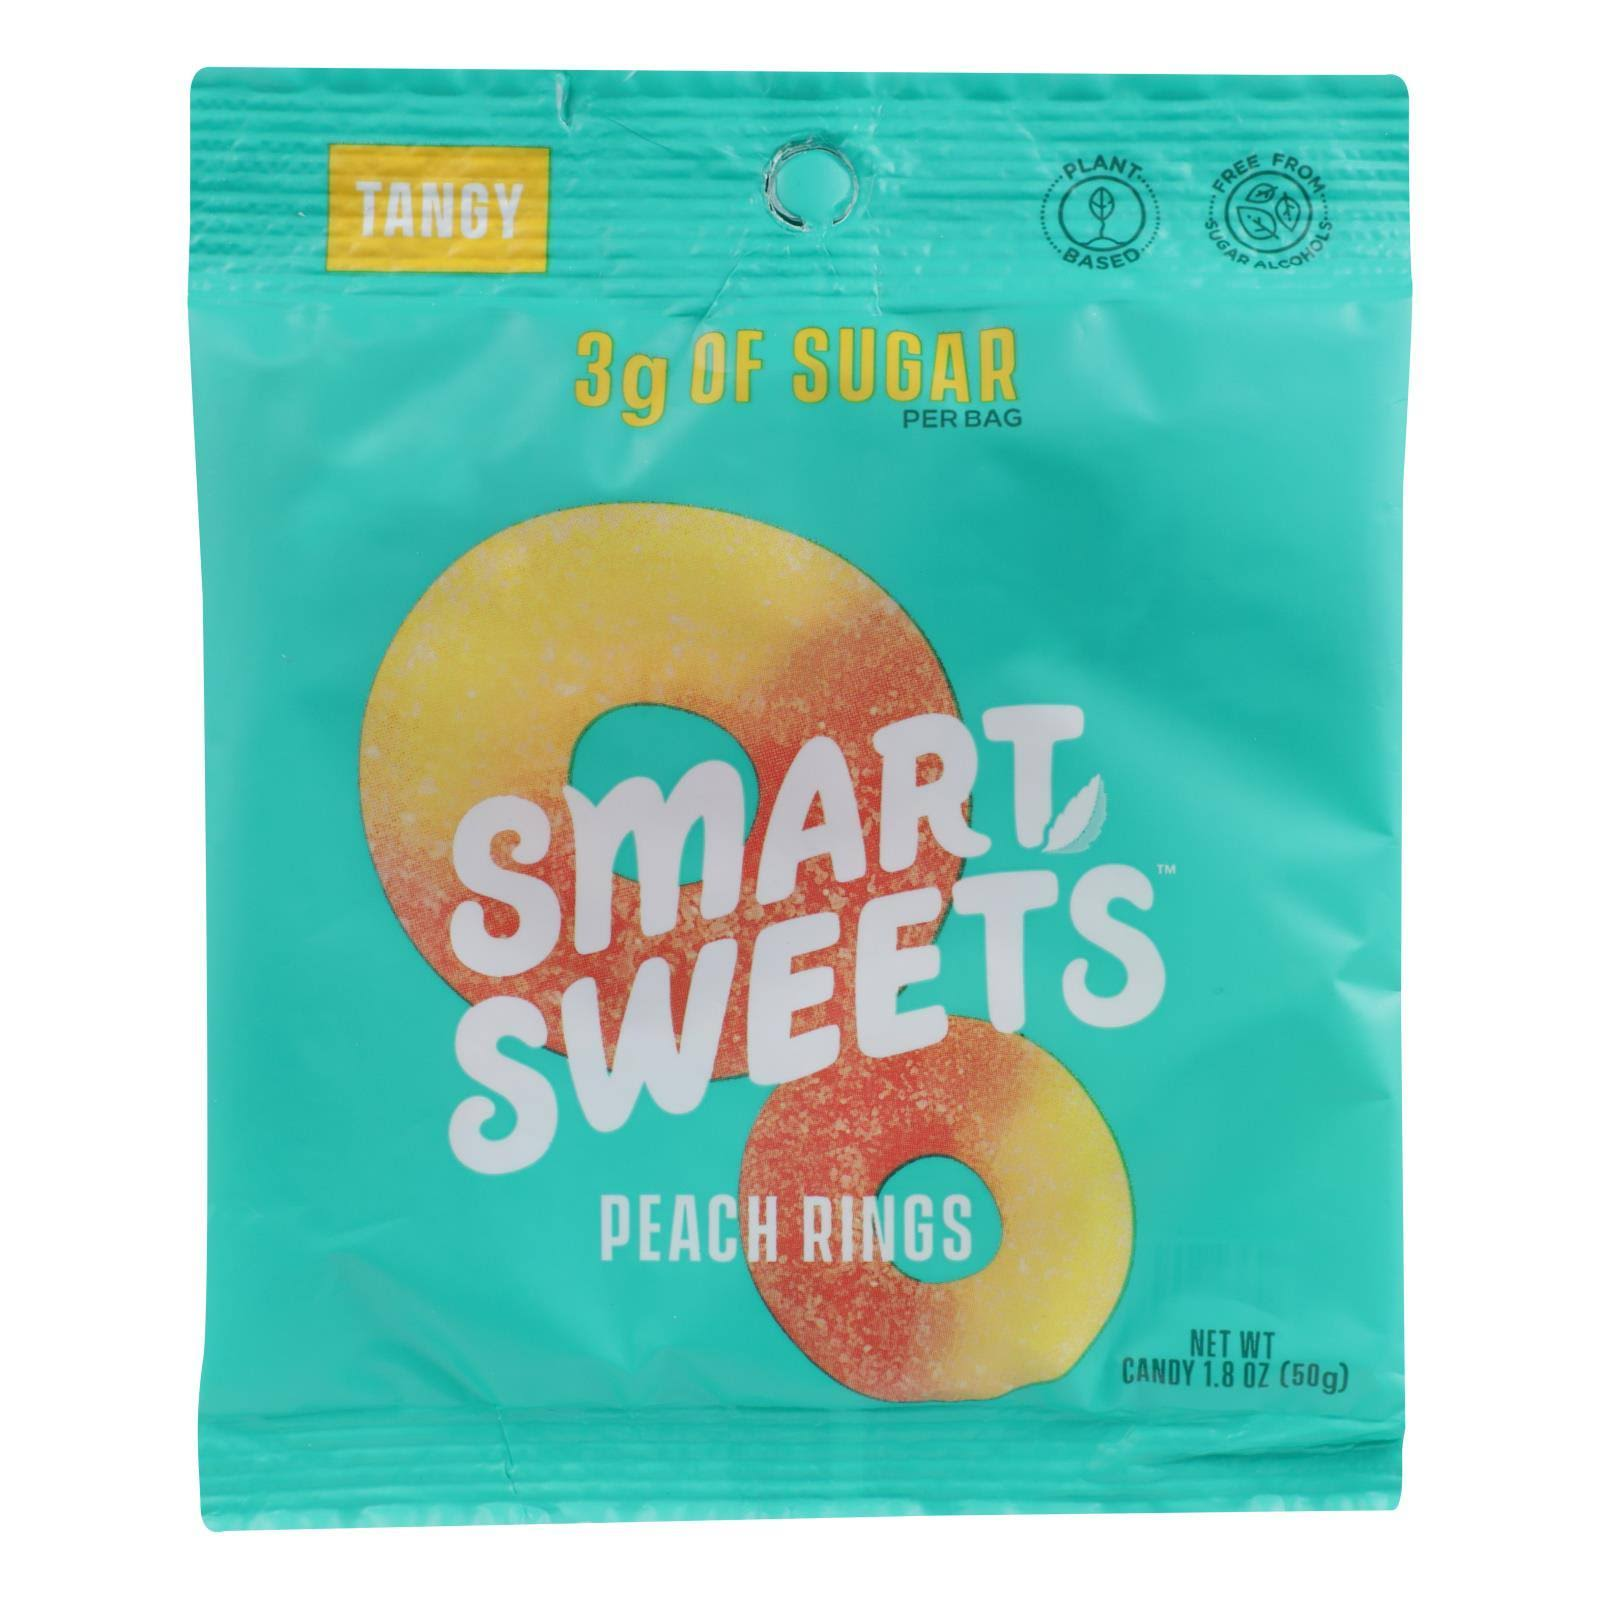 Smart Sweets Candy, Tangy, Peach Rings - 1.8 oz